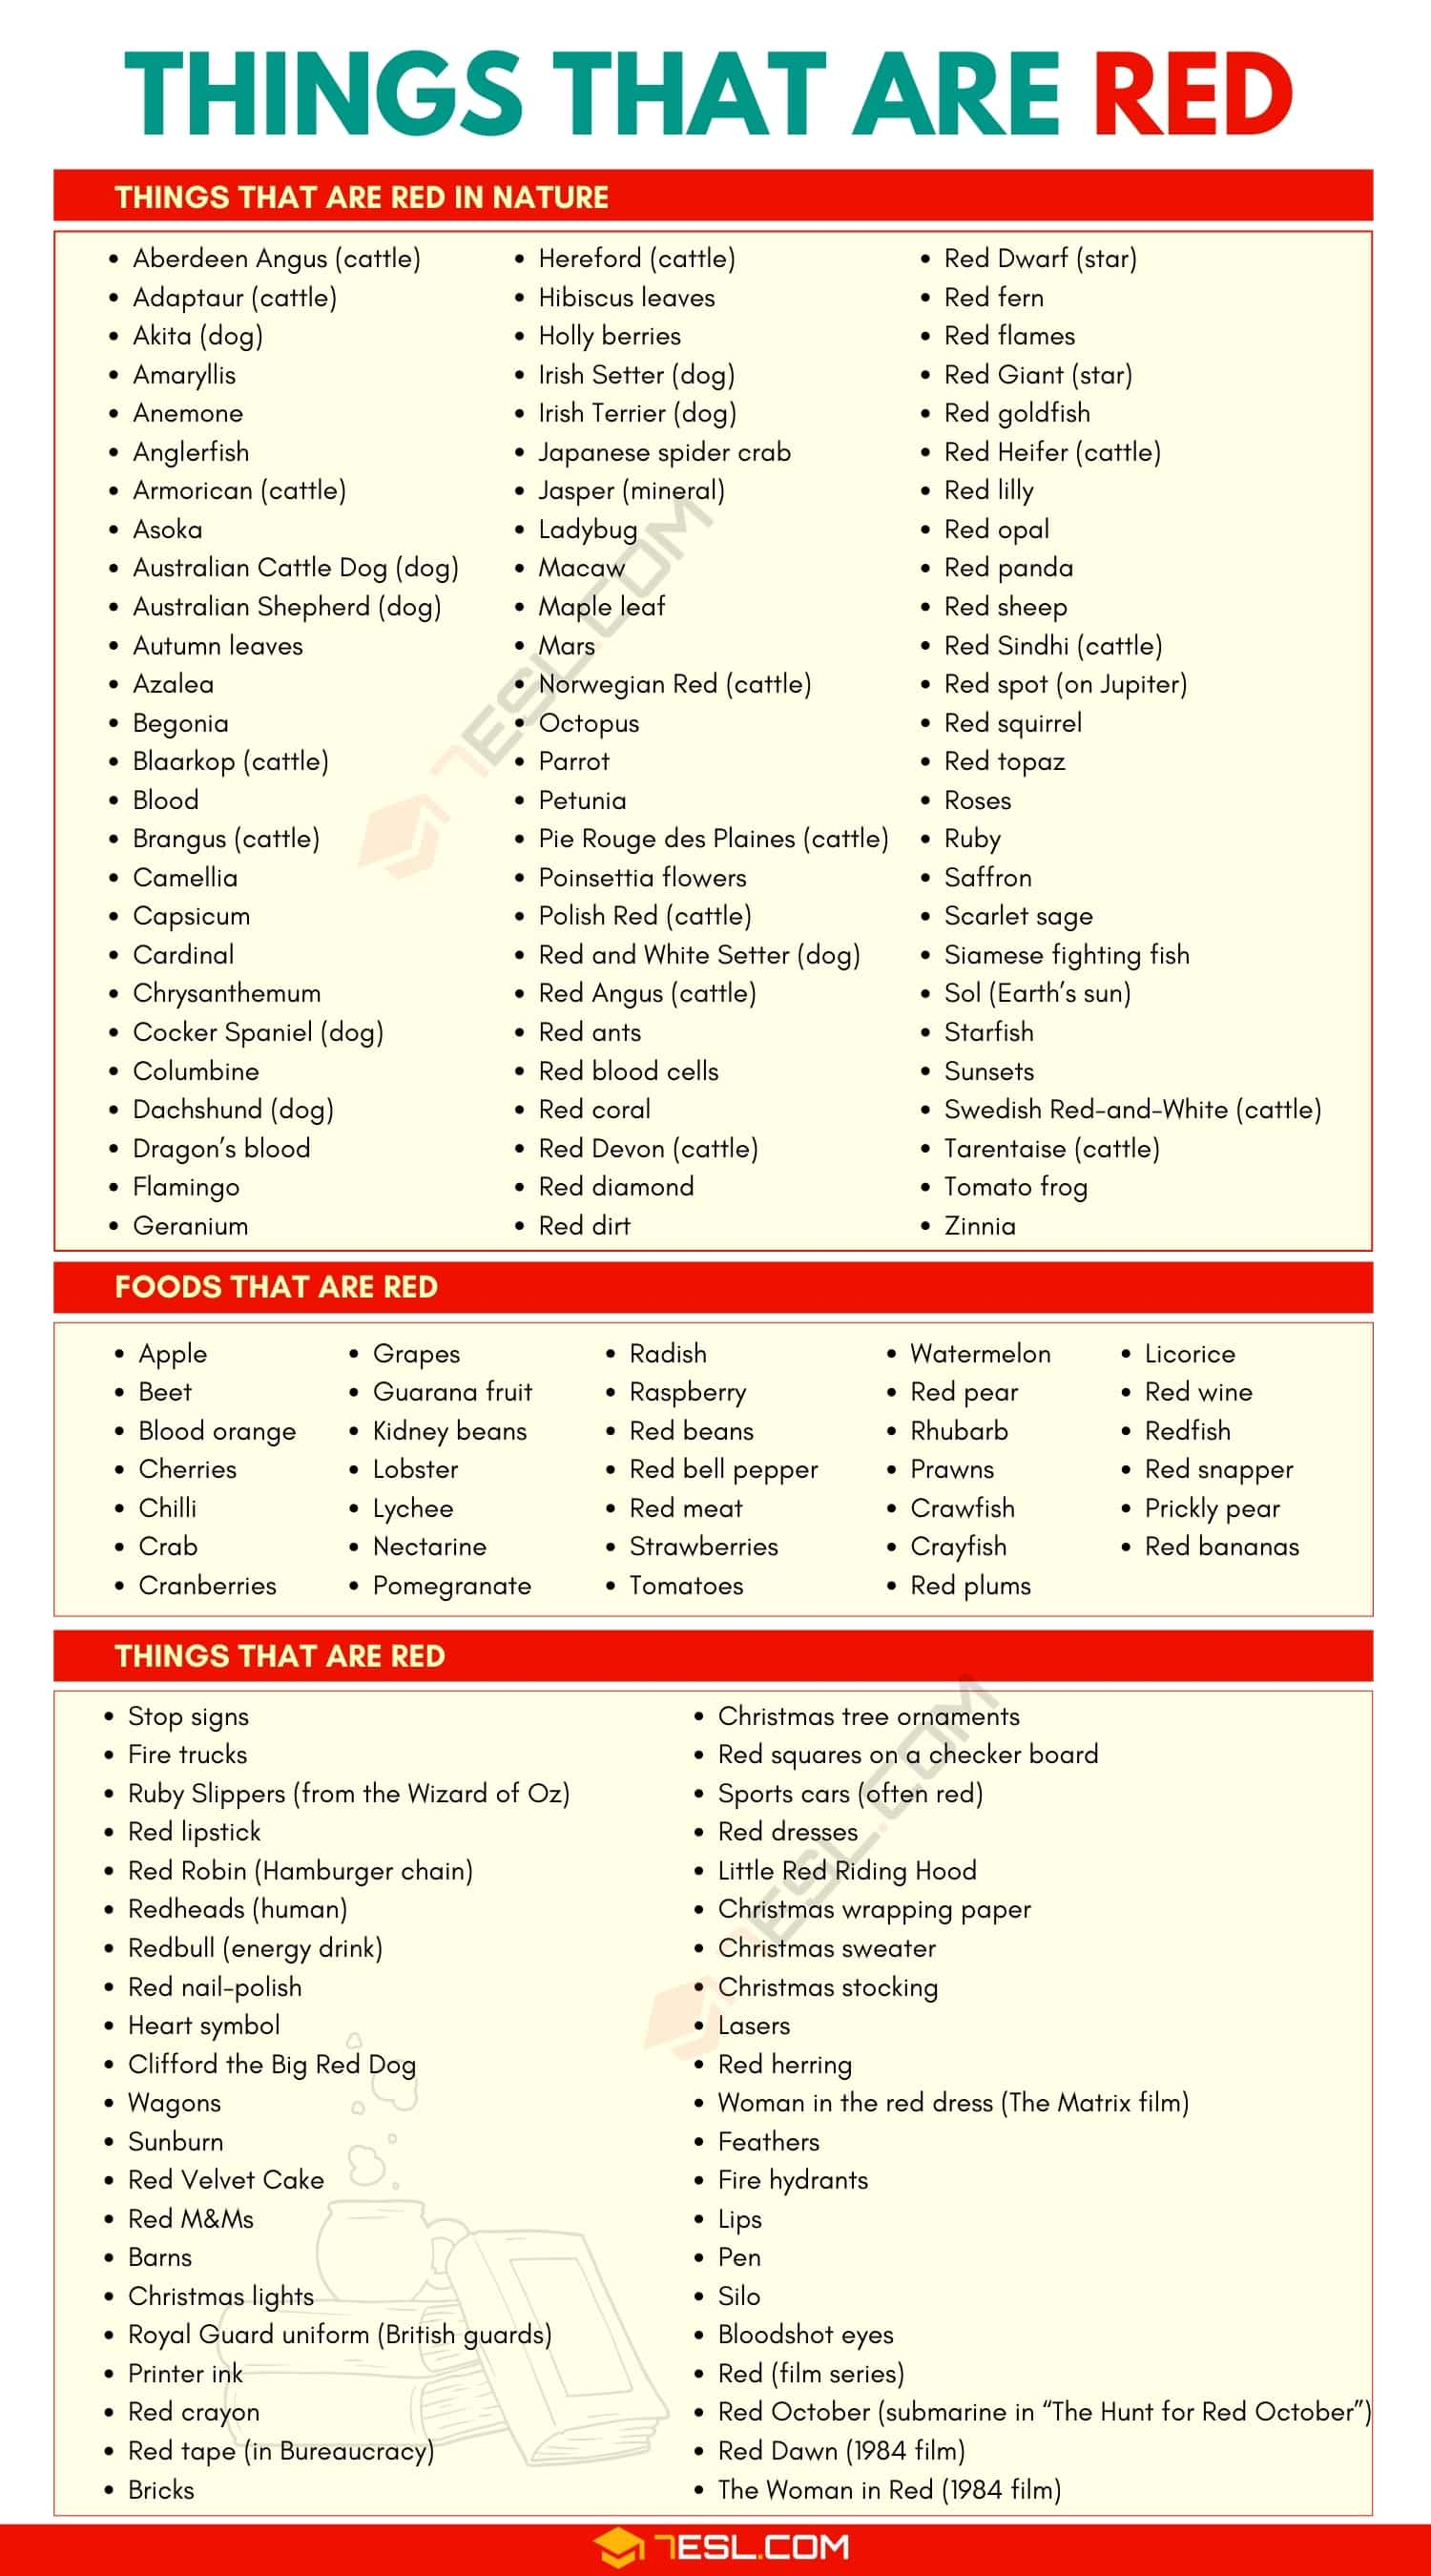 Things that are Red: List of 150+ Things that are Red